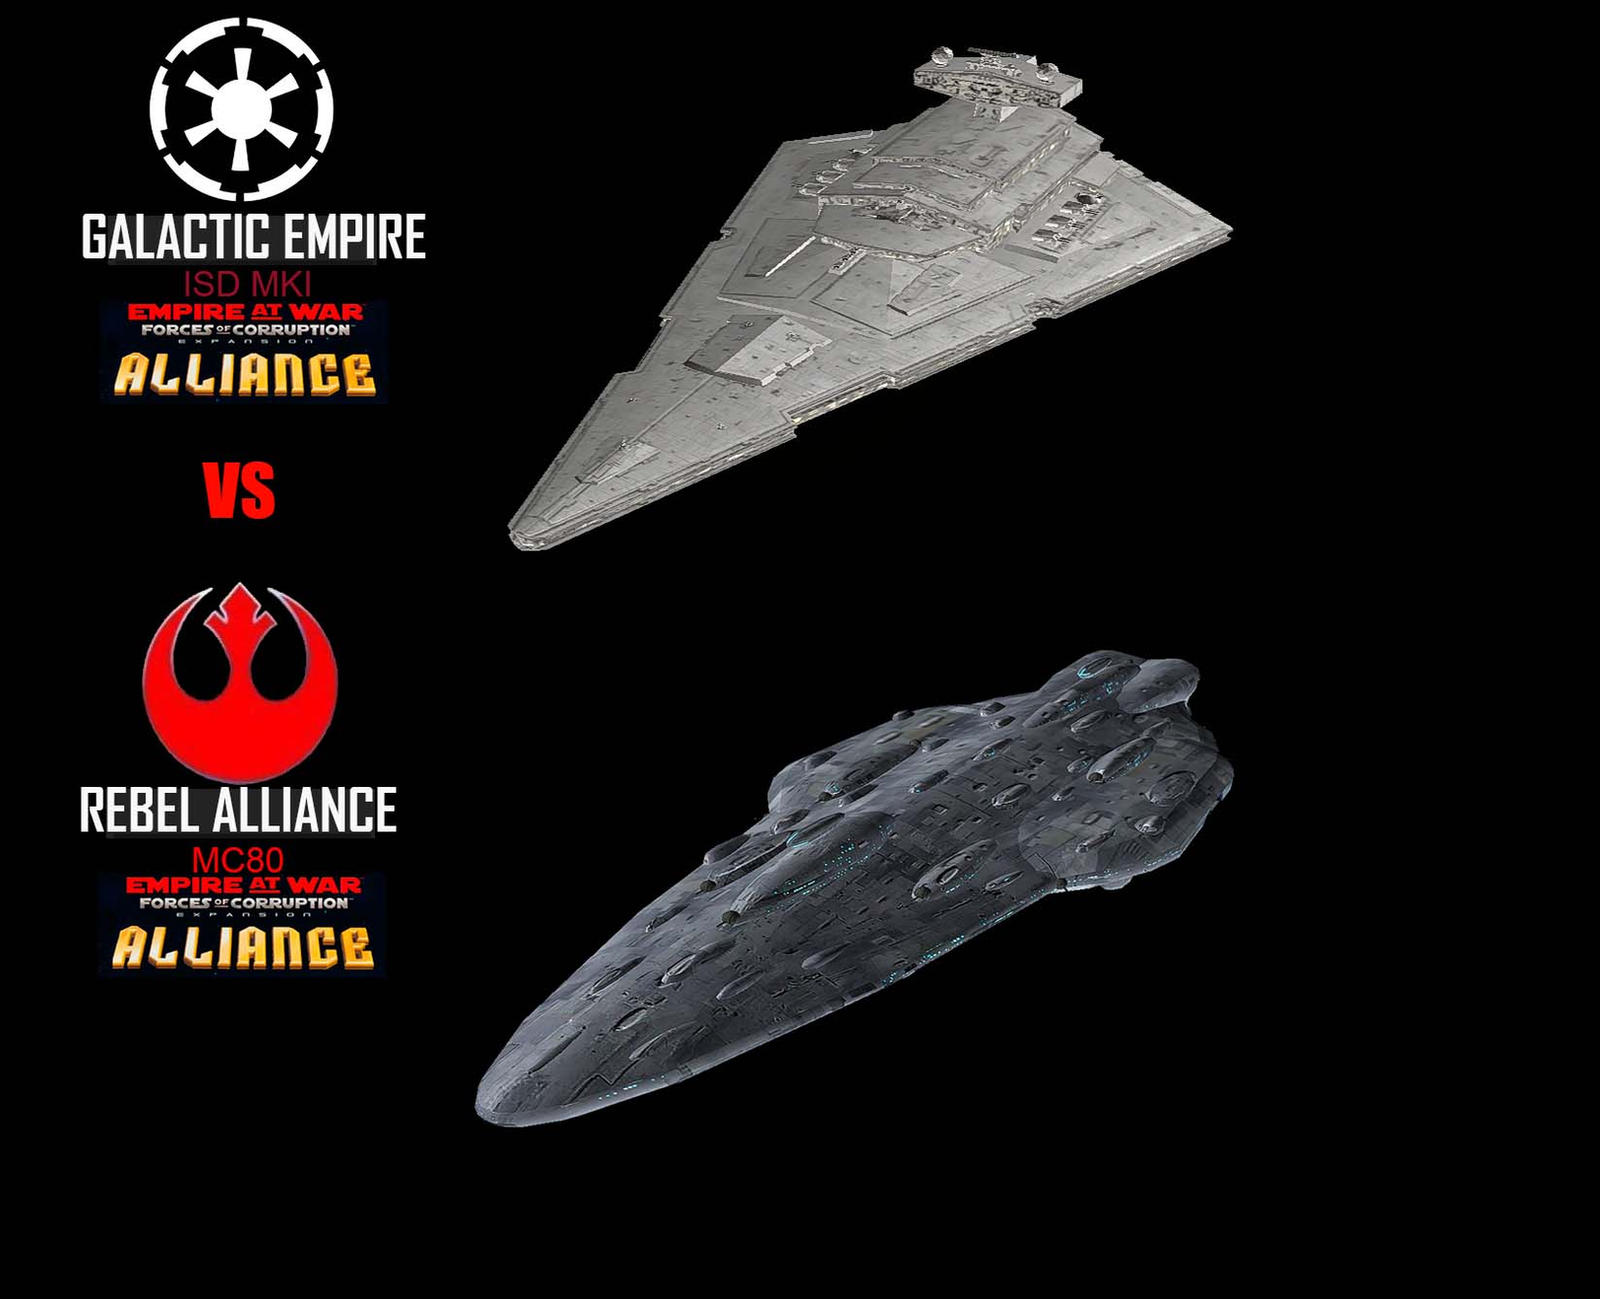 Star Wars Empire at War – FOC Alliance – ISD MKI vs MC80 MKI – Improved resistance